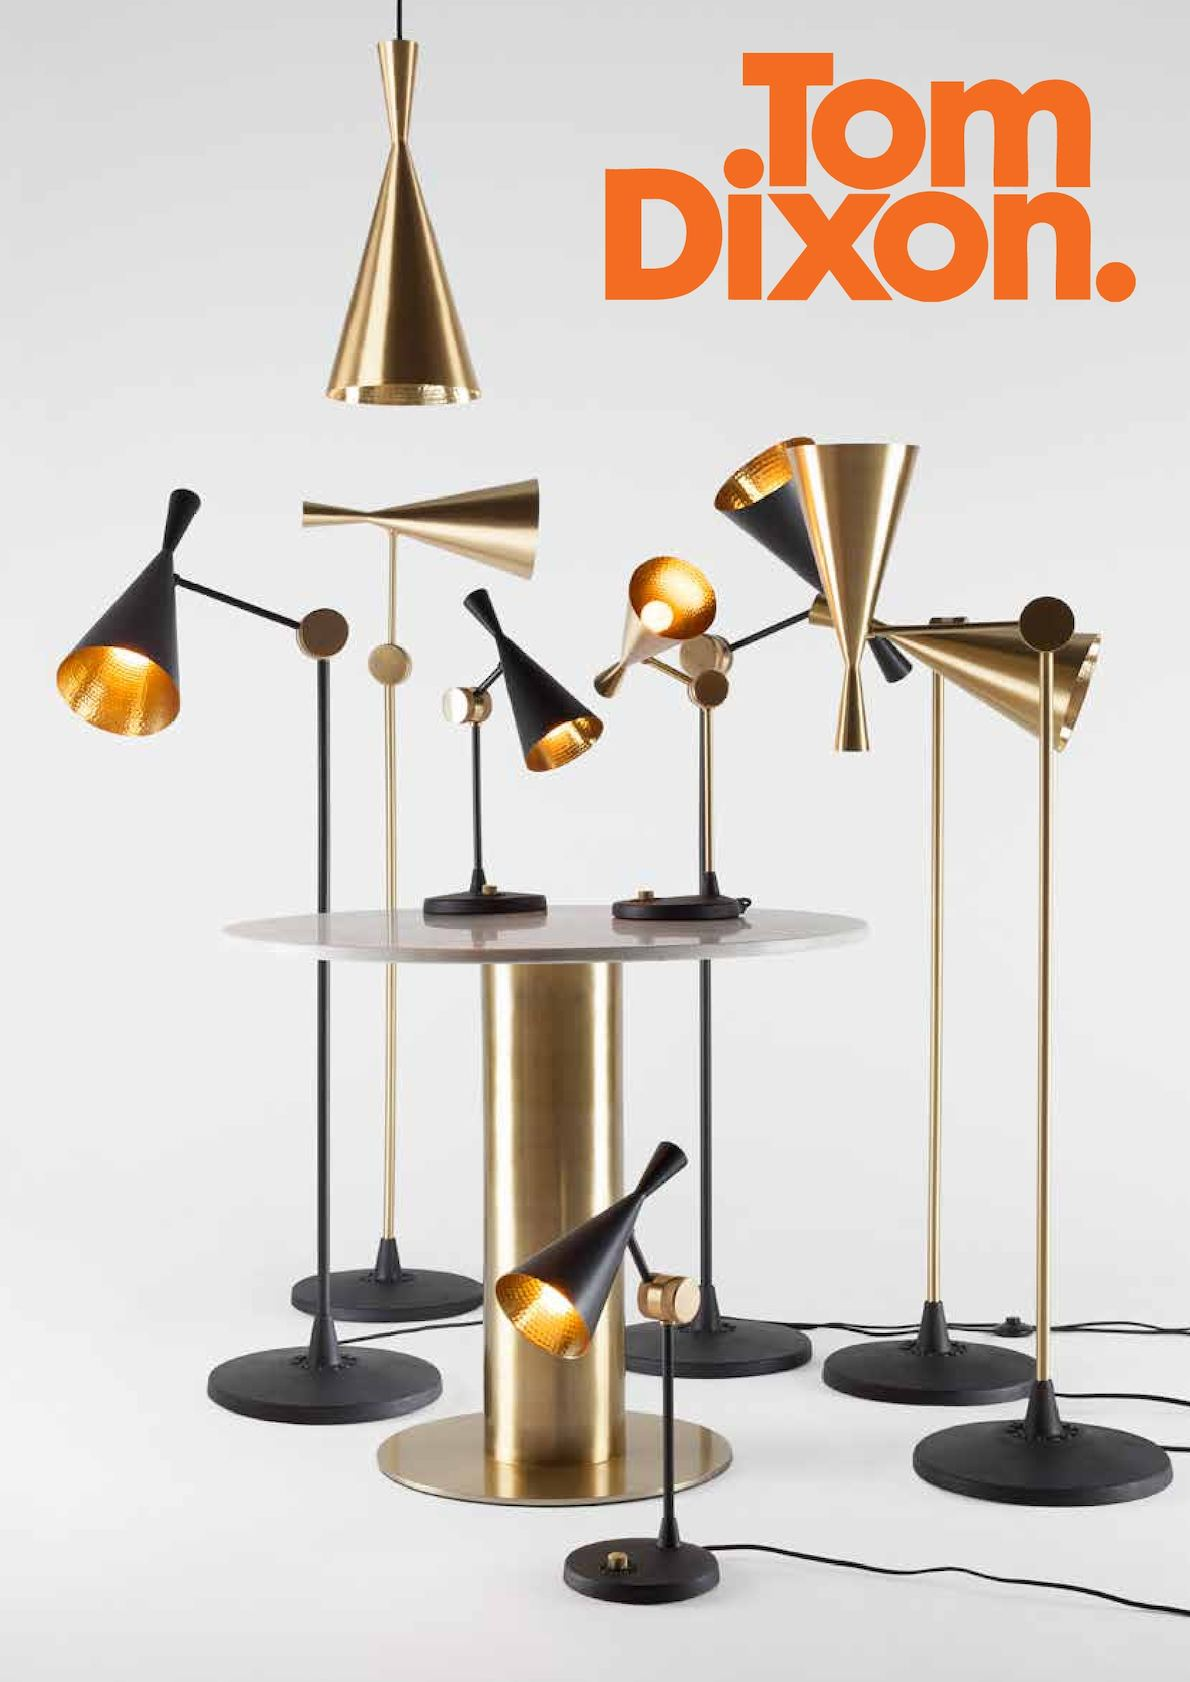 Tom Dixon Lookbook 2014